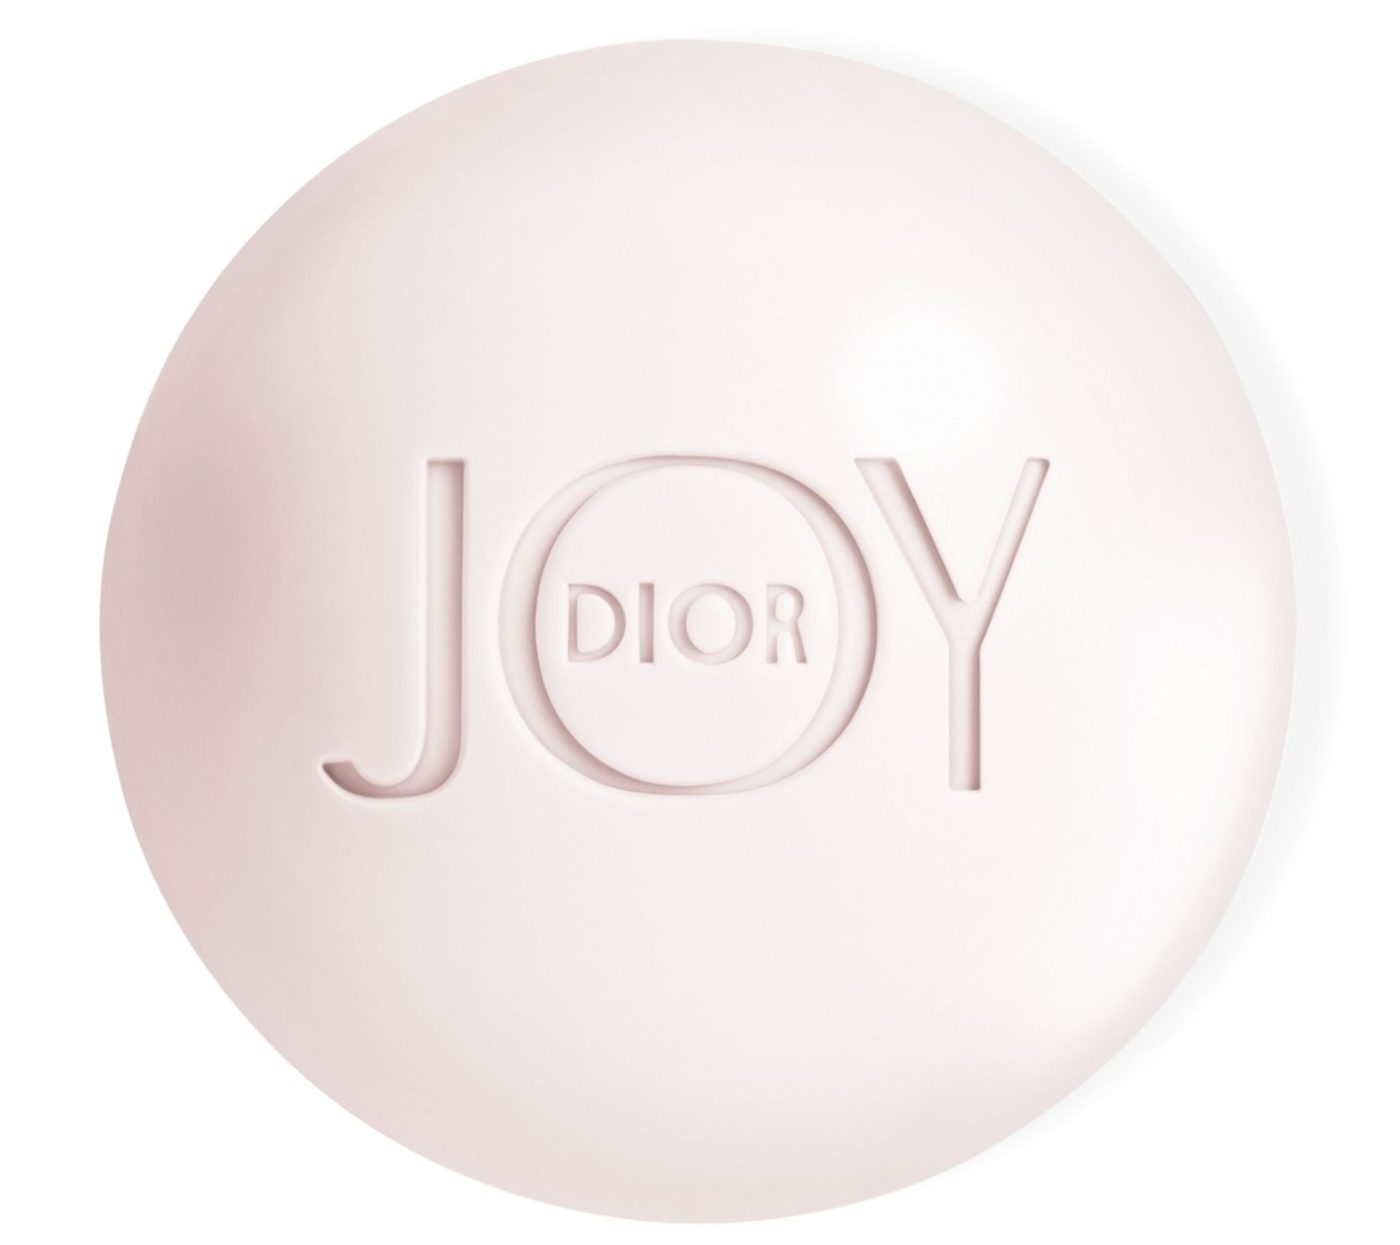 Dior JOY by Dior Pearly Bath Soap